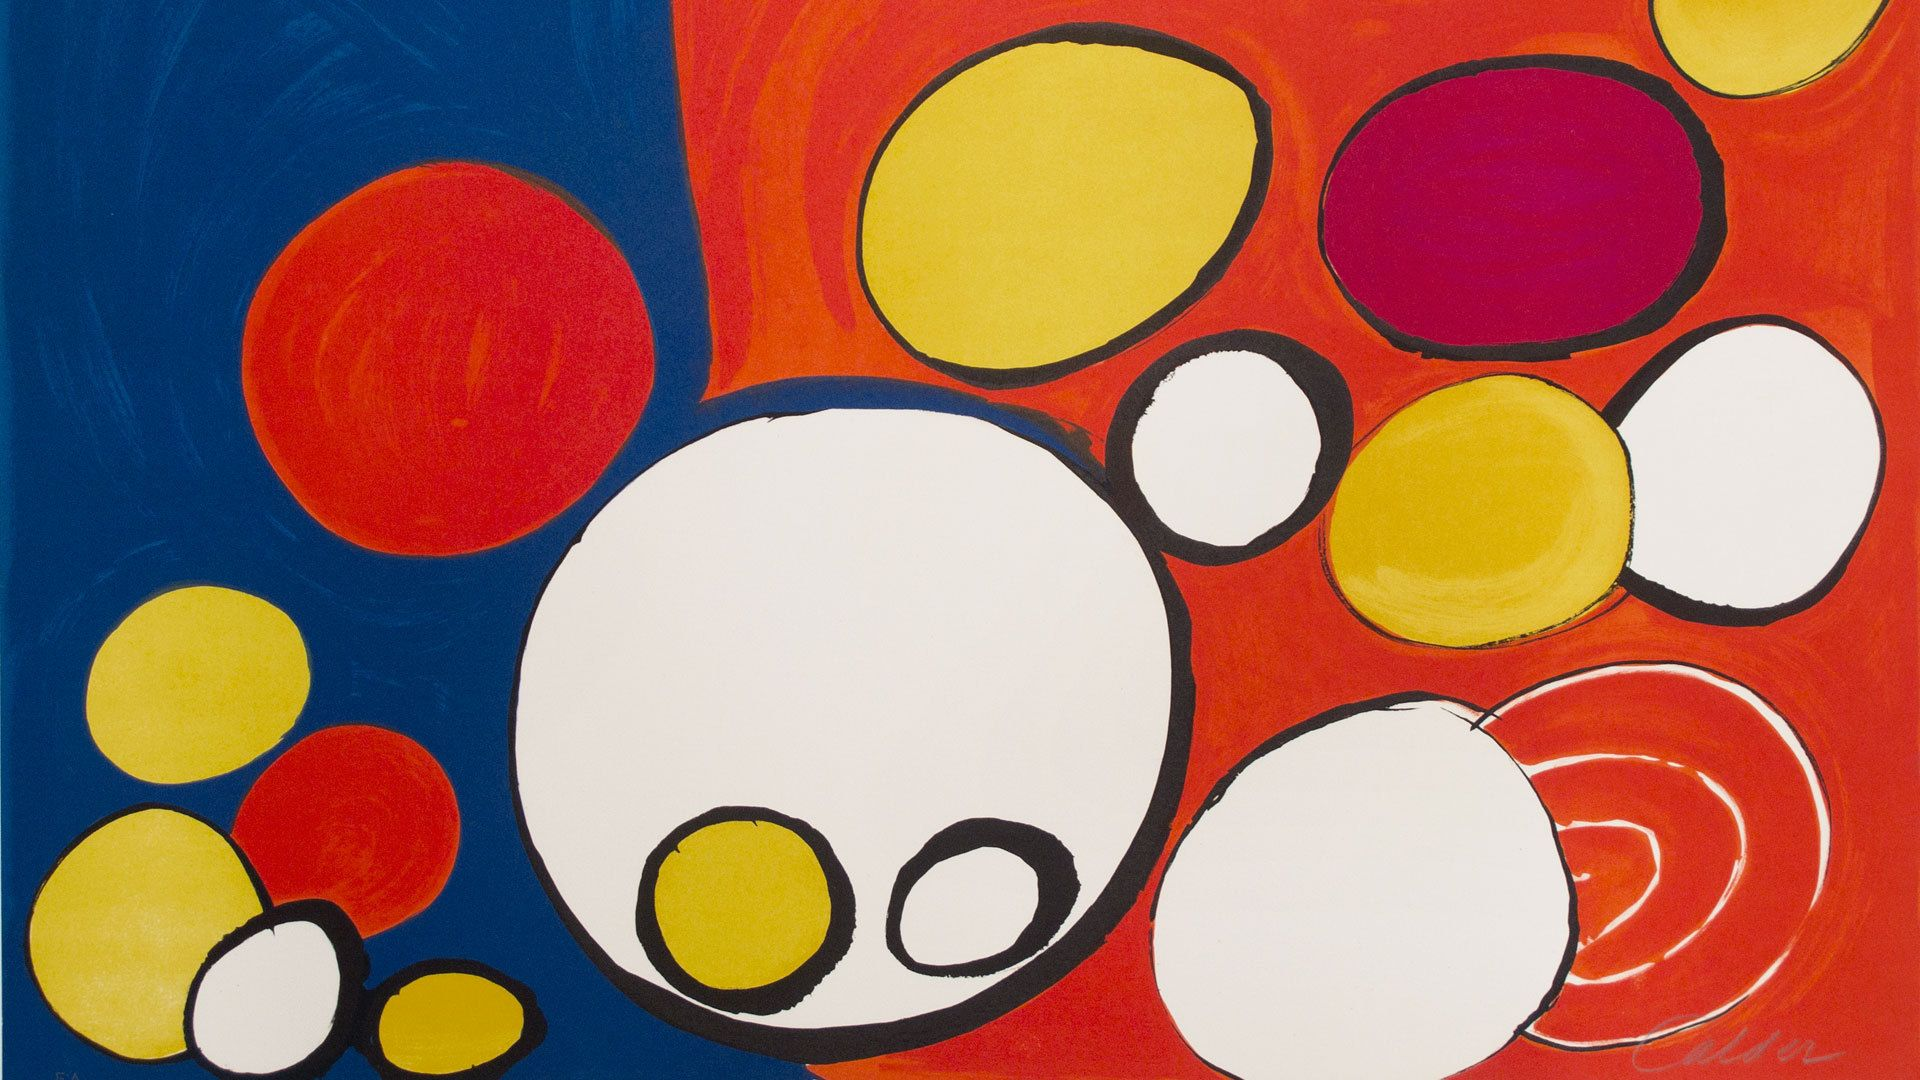 Circle With Eyes By Alexander Calder 1976 Lithograph With